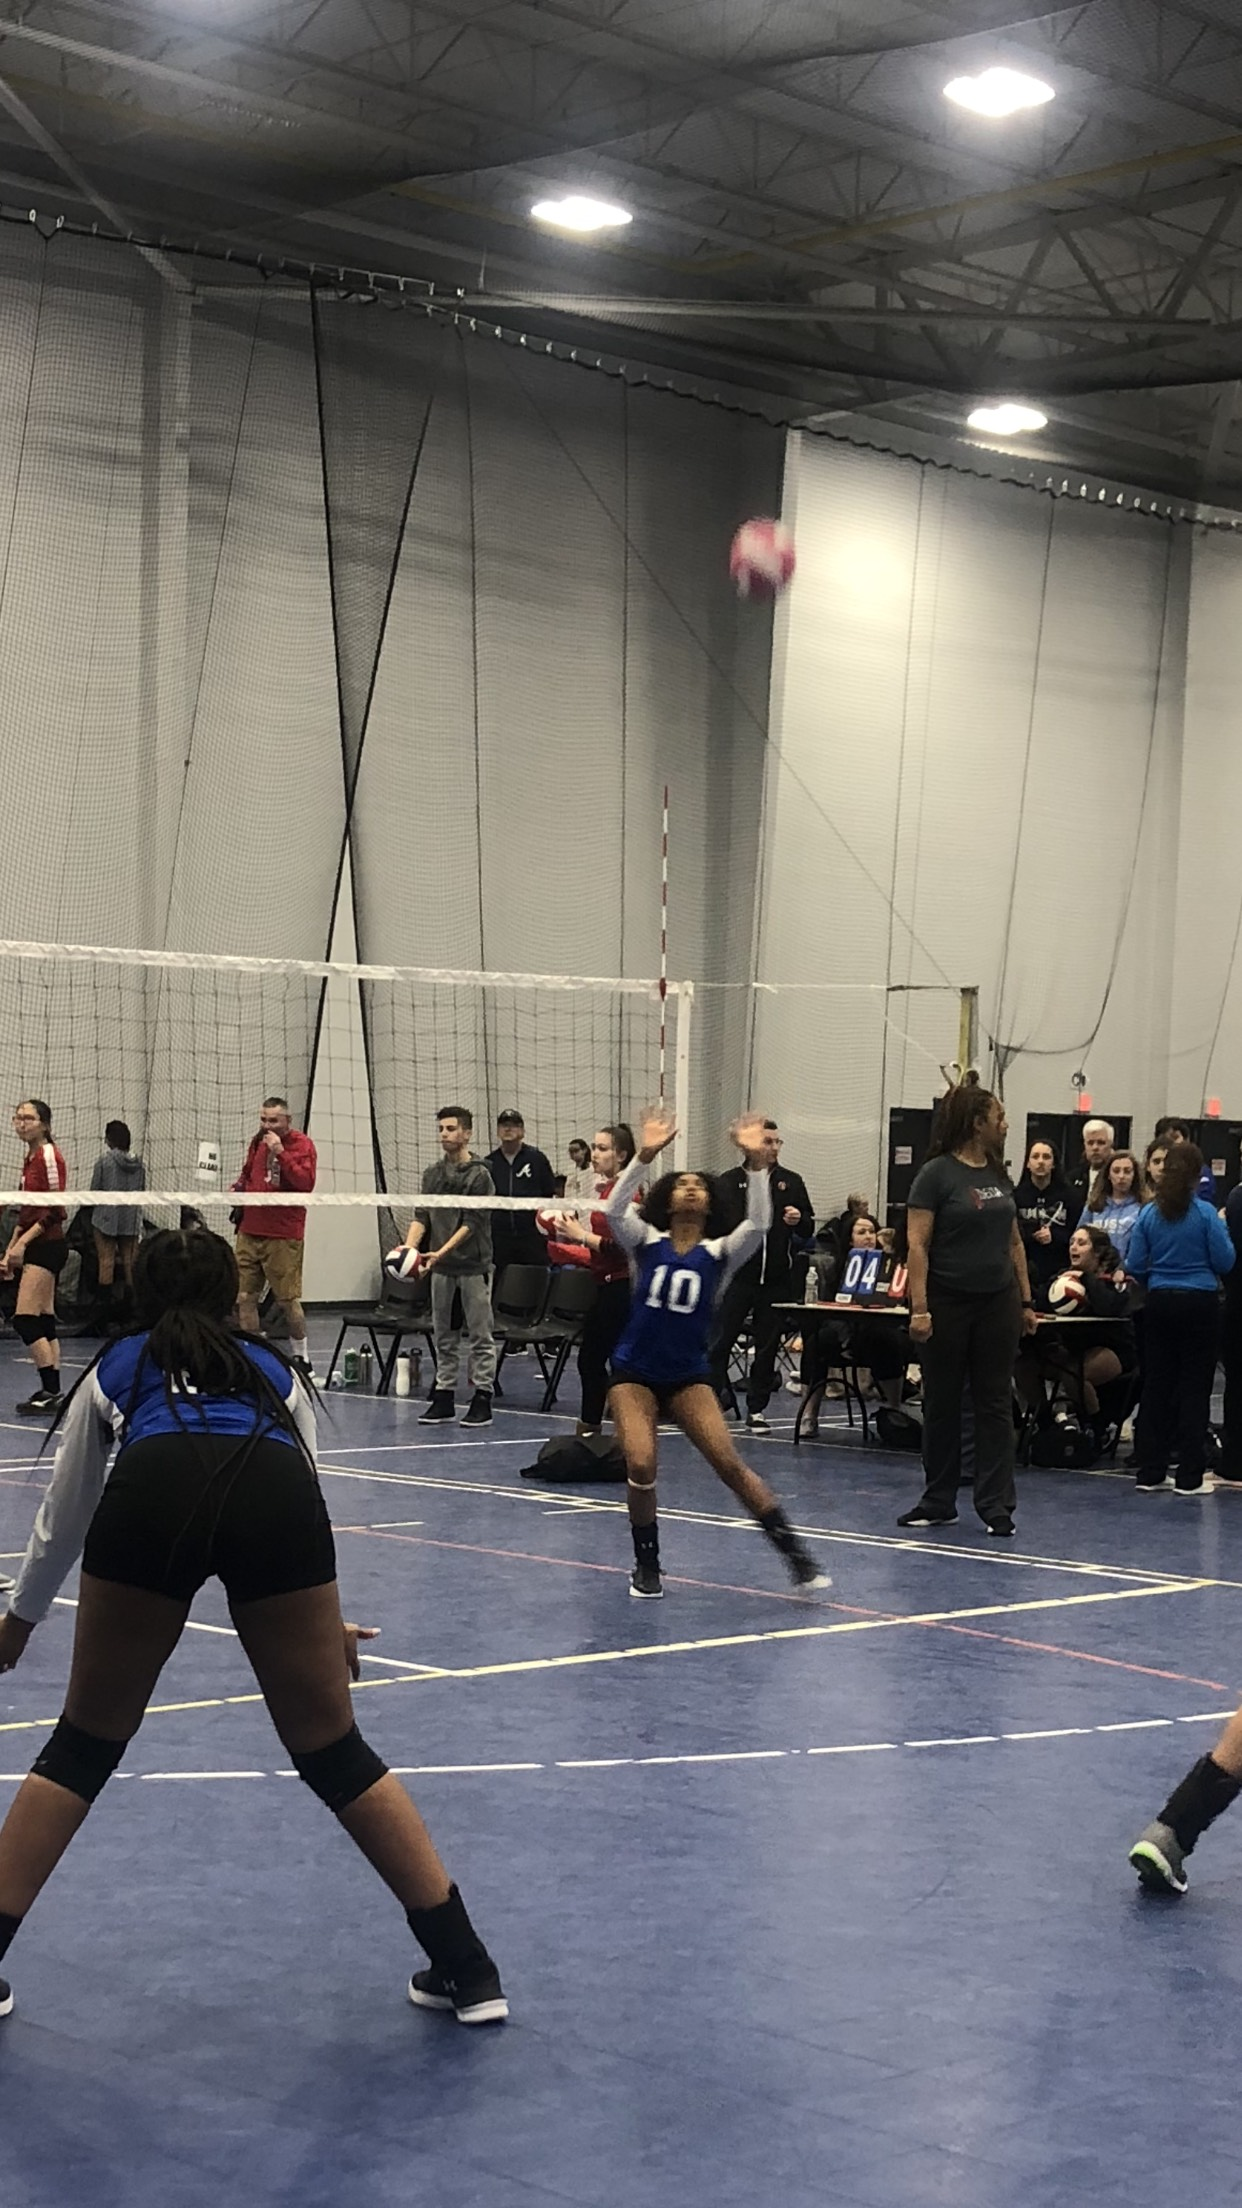 Volleyball Spiked City Dc Volleyball United States